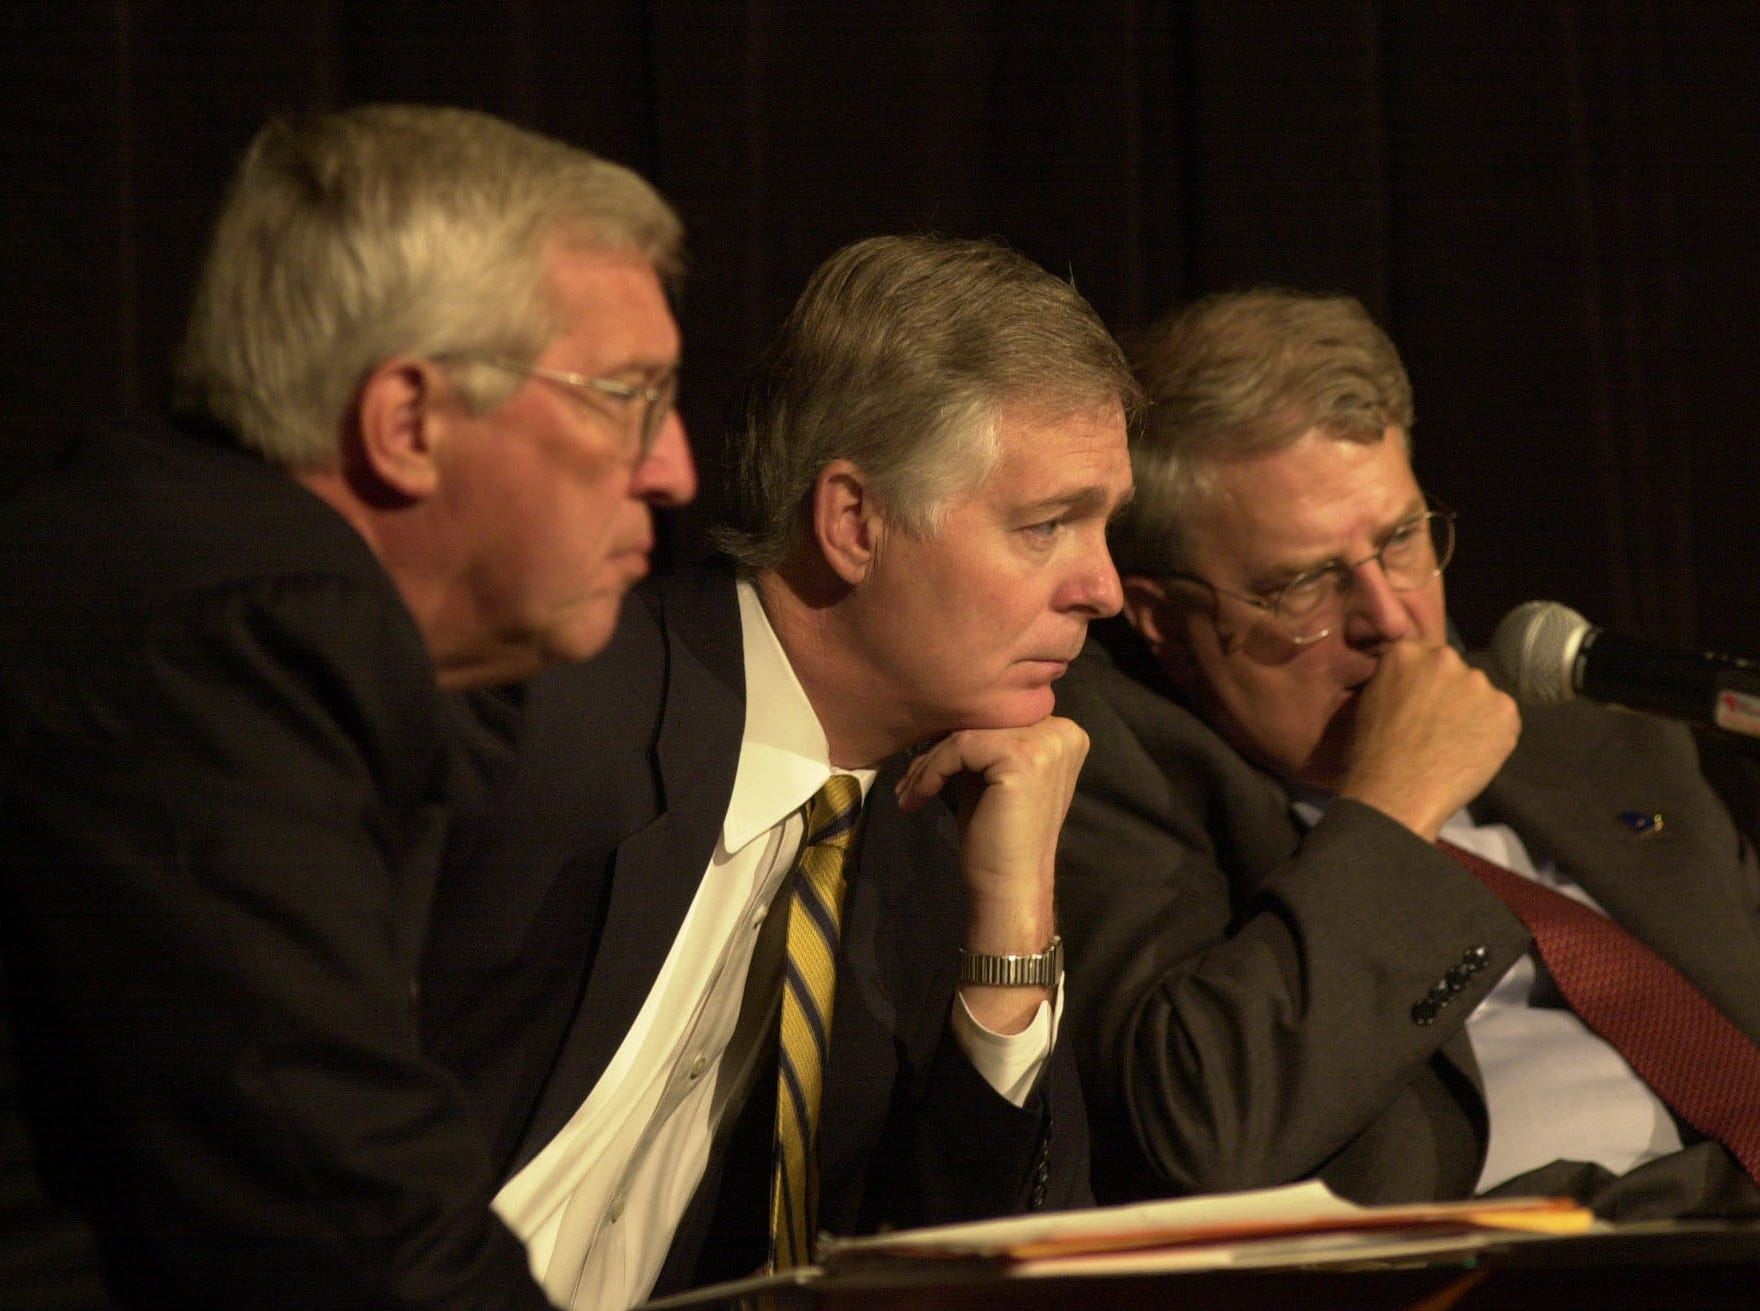 Tennessee Governor Don Sundquist, North Carolina Governor Michael Easley, and Georgia Governor Roy Barnes watch a monitor as one of the panelist at the Third Annual Governor' Summit on Mountaqin Air Quality talks about states records on emissions. The event was held at the Park Vista Hotel Thursday and Friday in Gatlinburg.